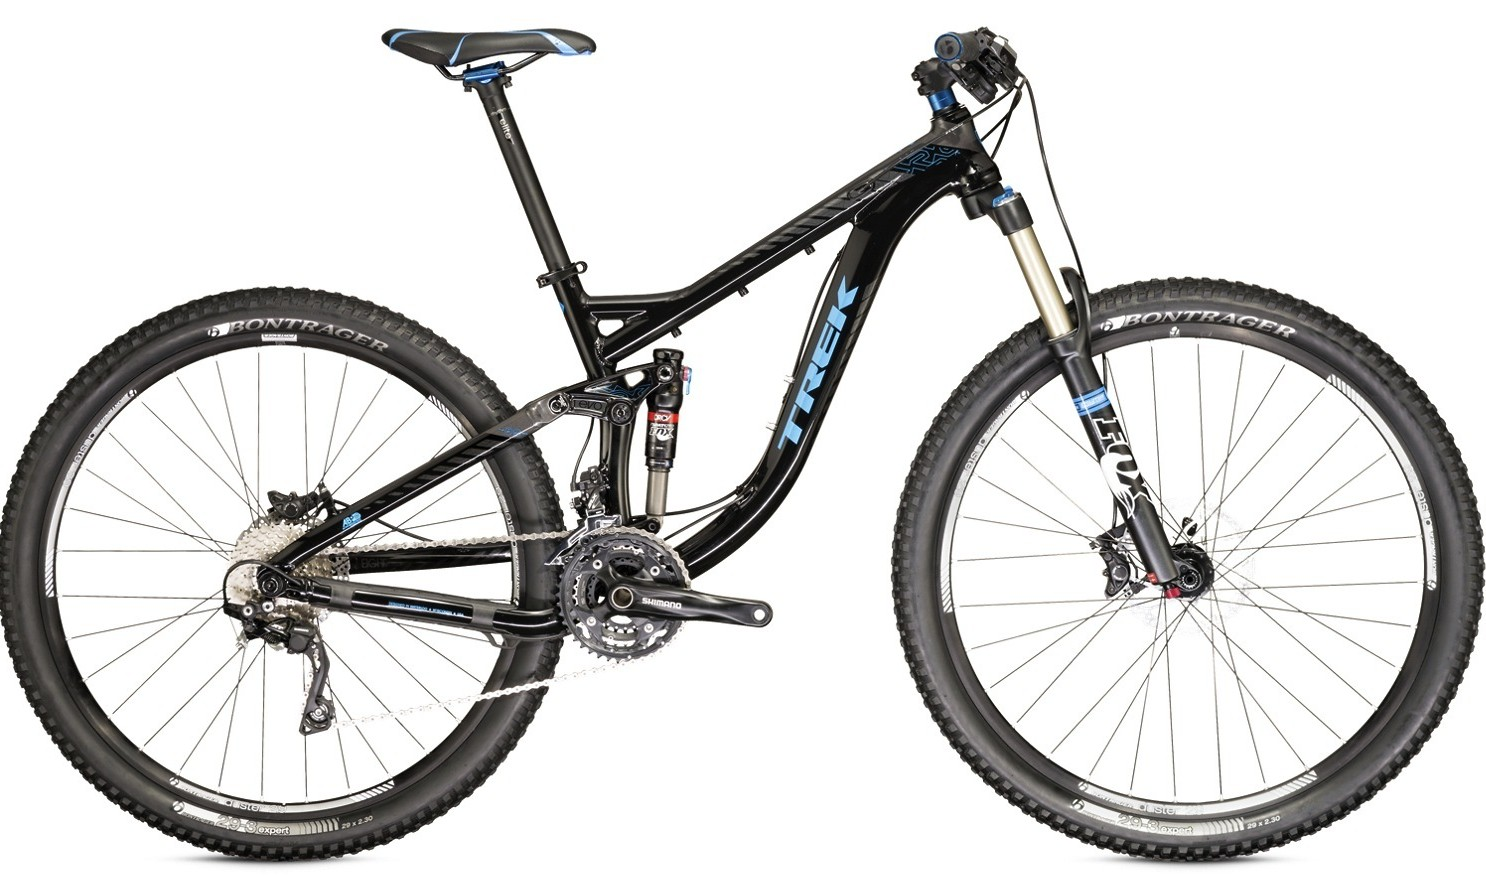 2014 Trek Remedy 8 29 Bike bike - 2014 Trek Remedy 8 29